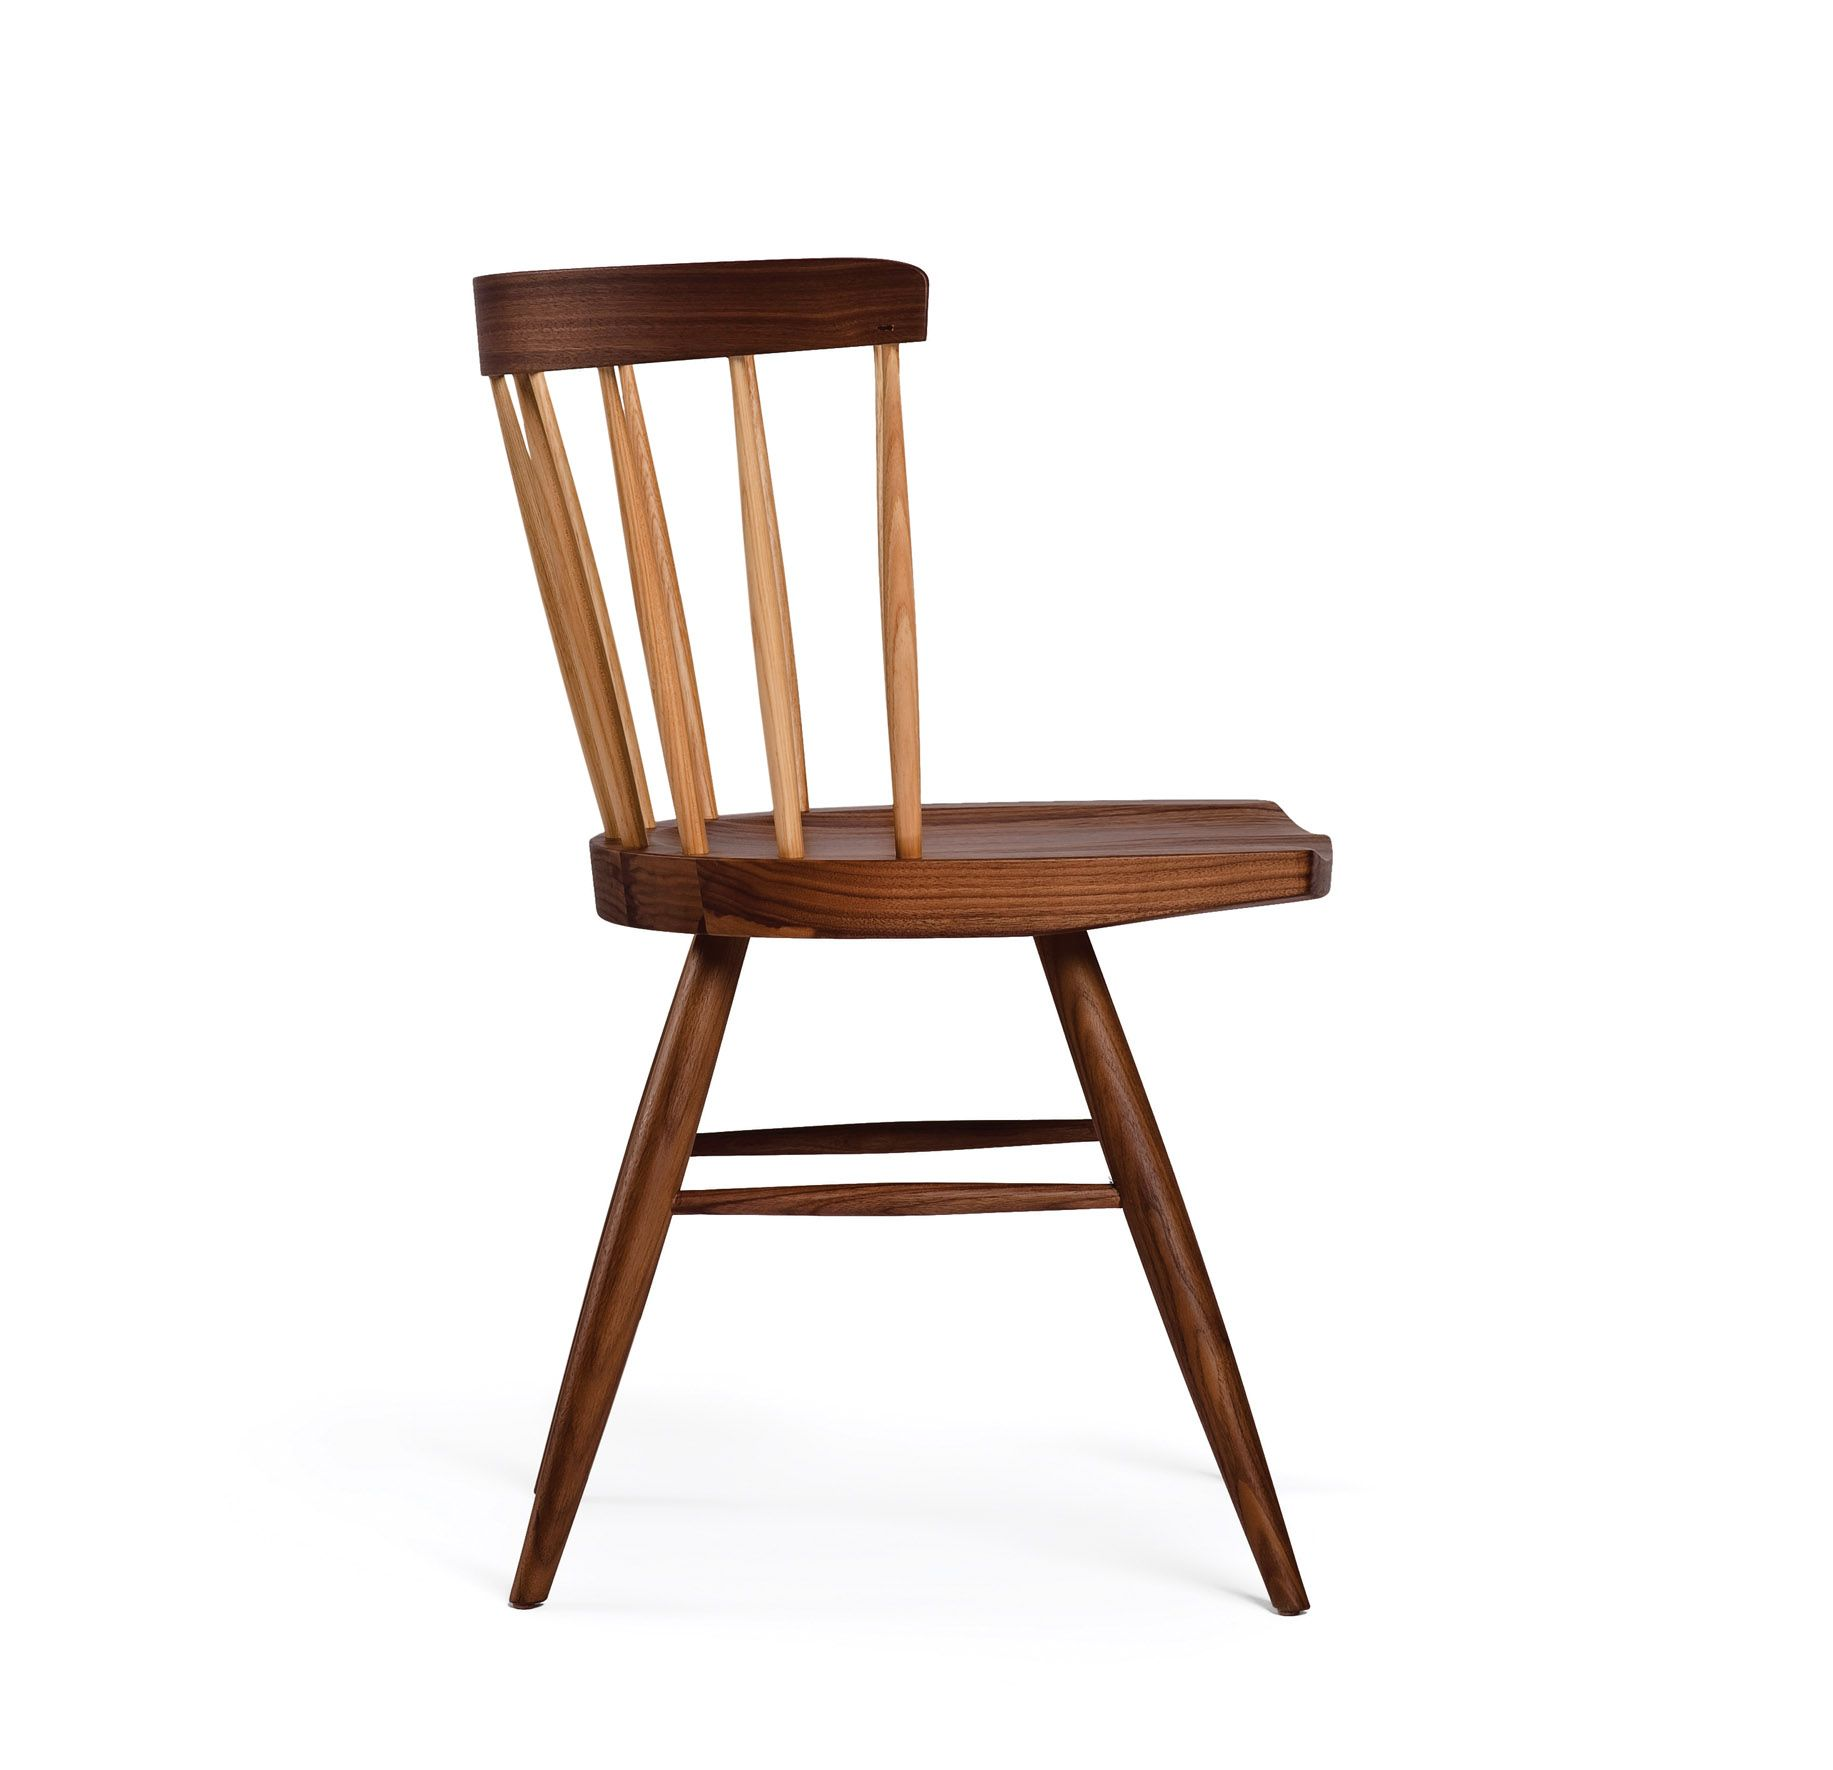 Straight Chair designed by George Nakashima